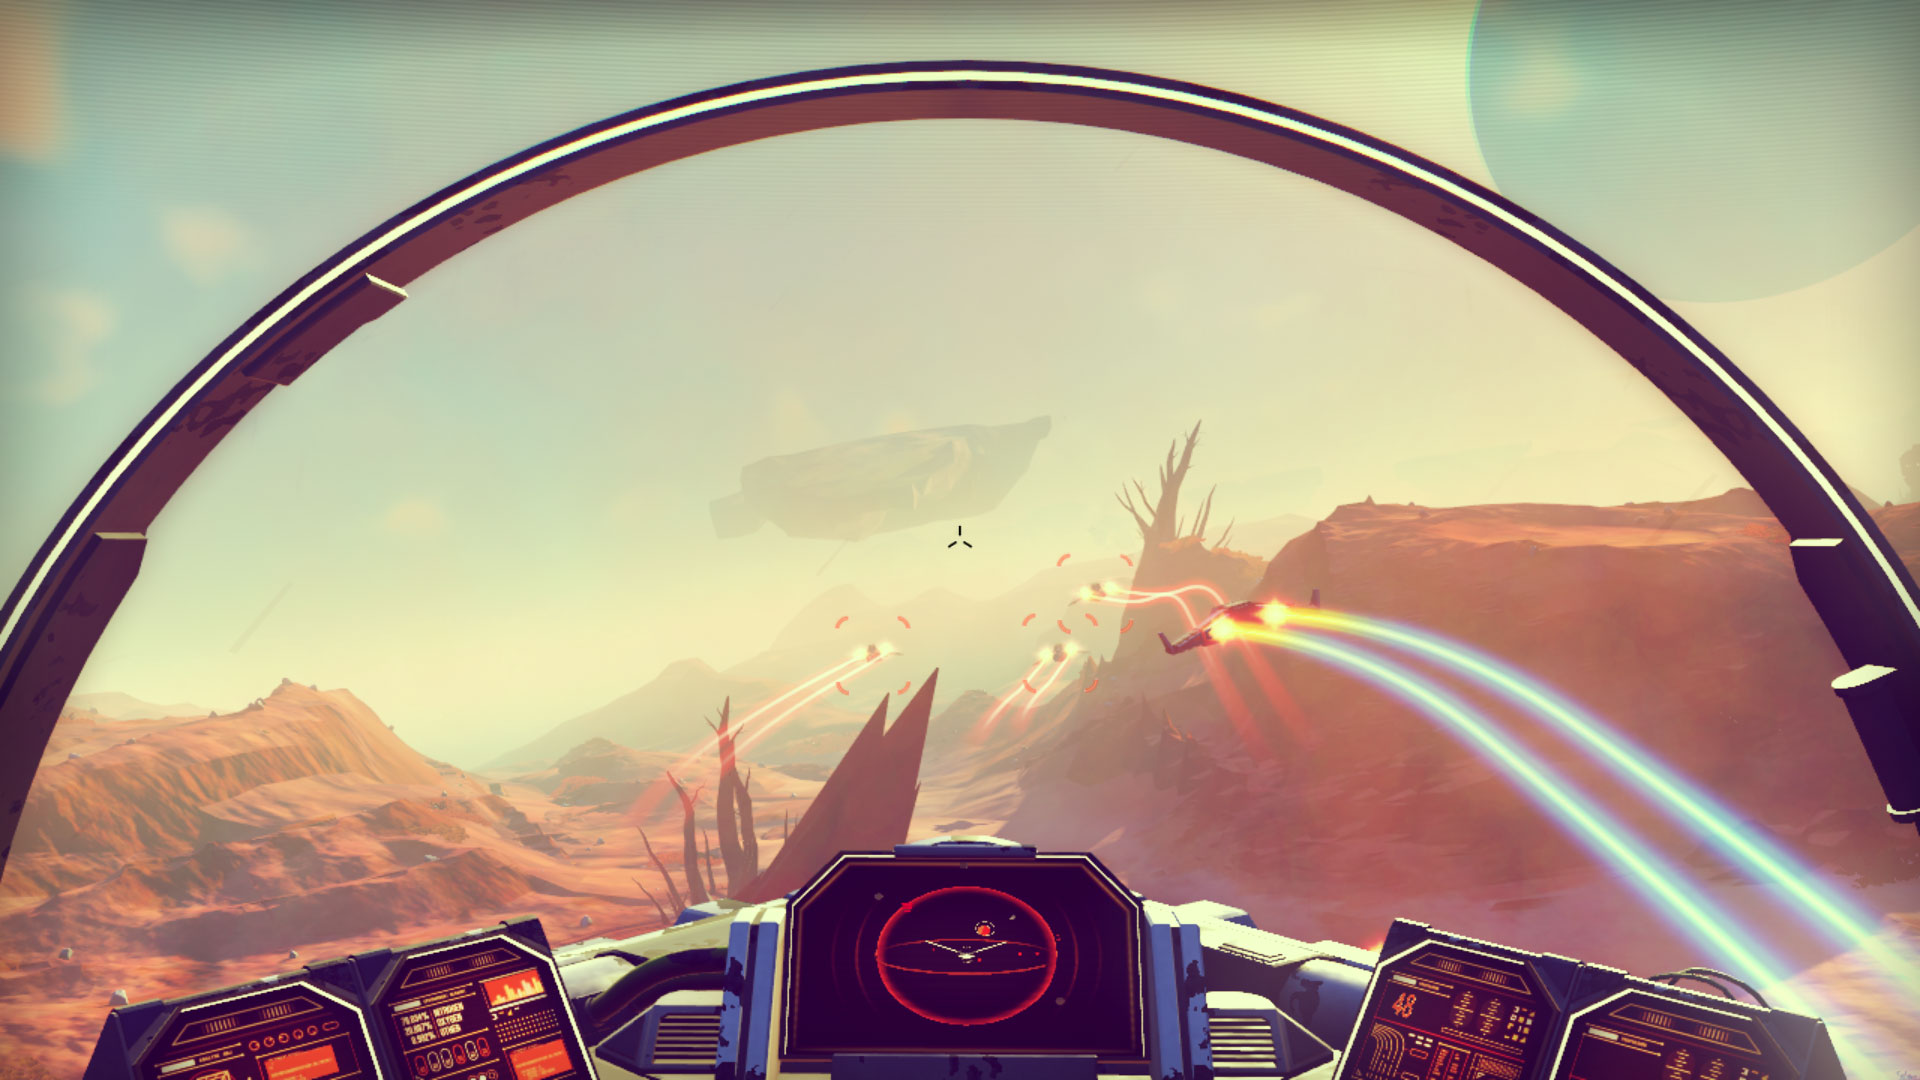 No Man's Sky Subreddit Re-Opened